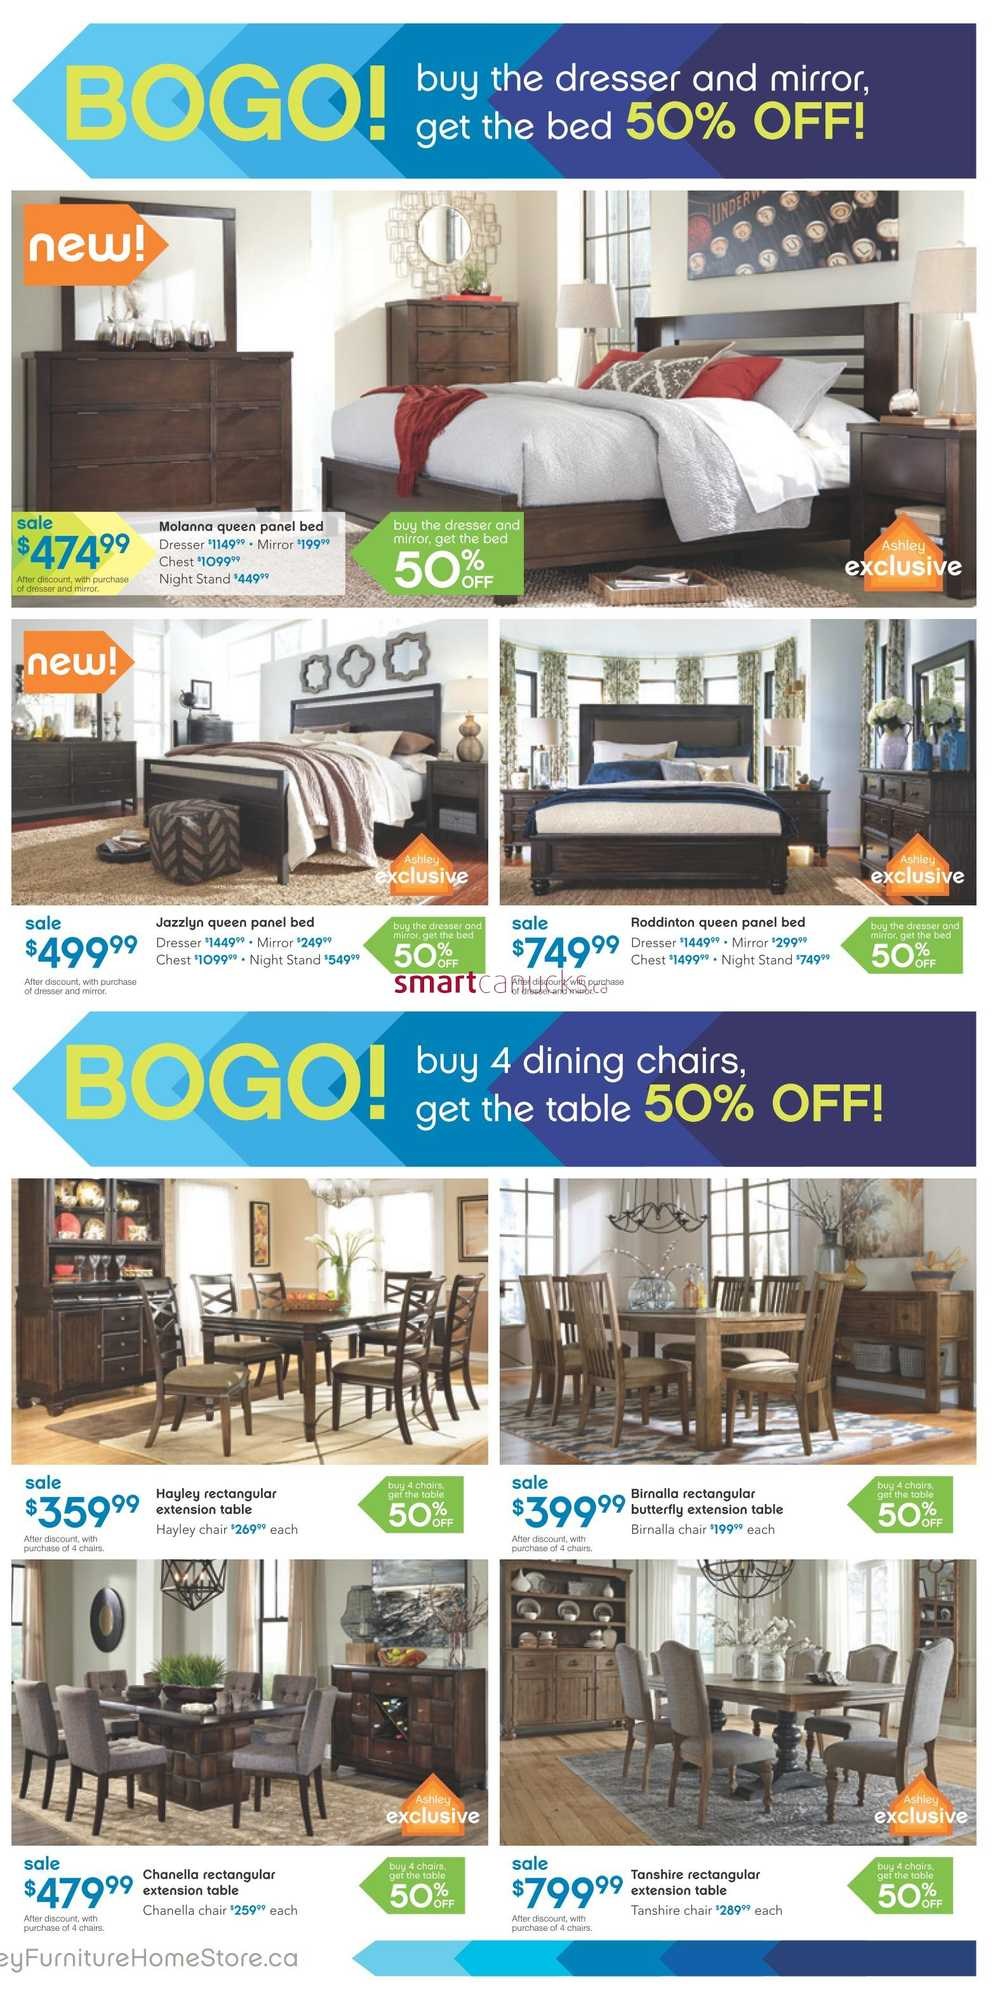 Ashley furniture home store west flyer october 2 to 4 for Ashley furniture homestore canada